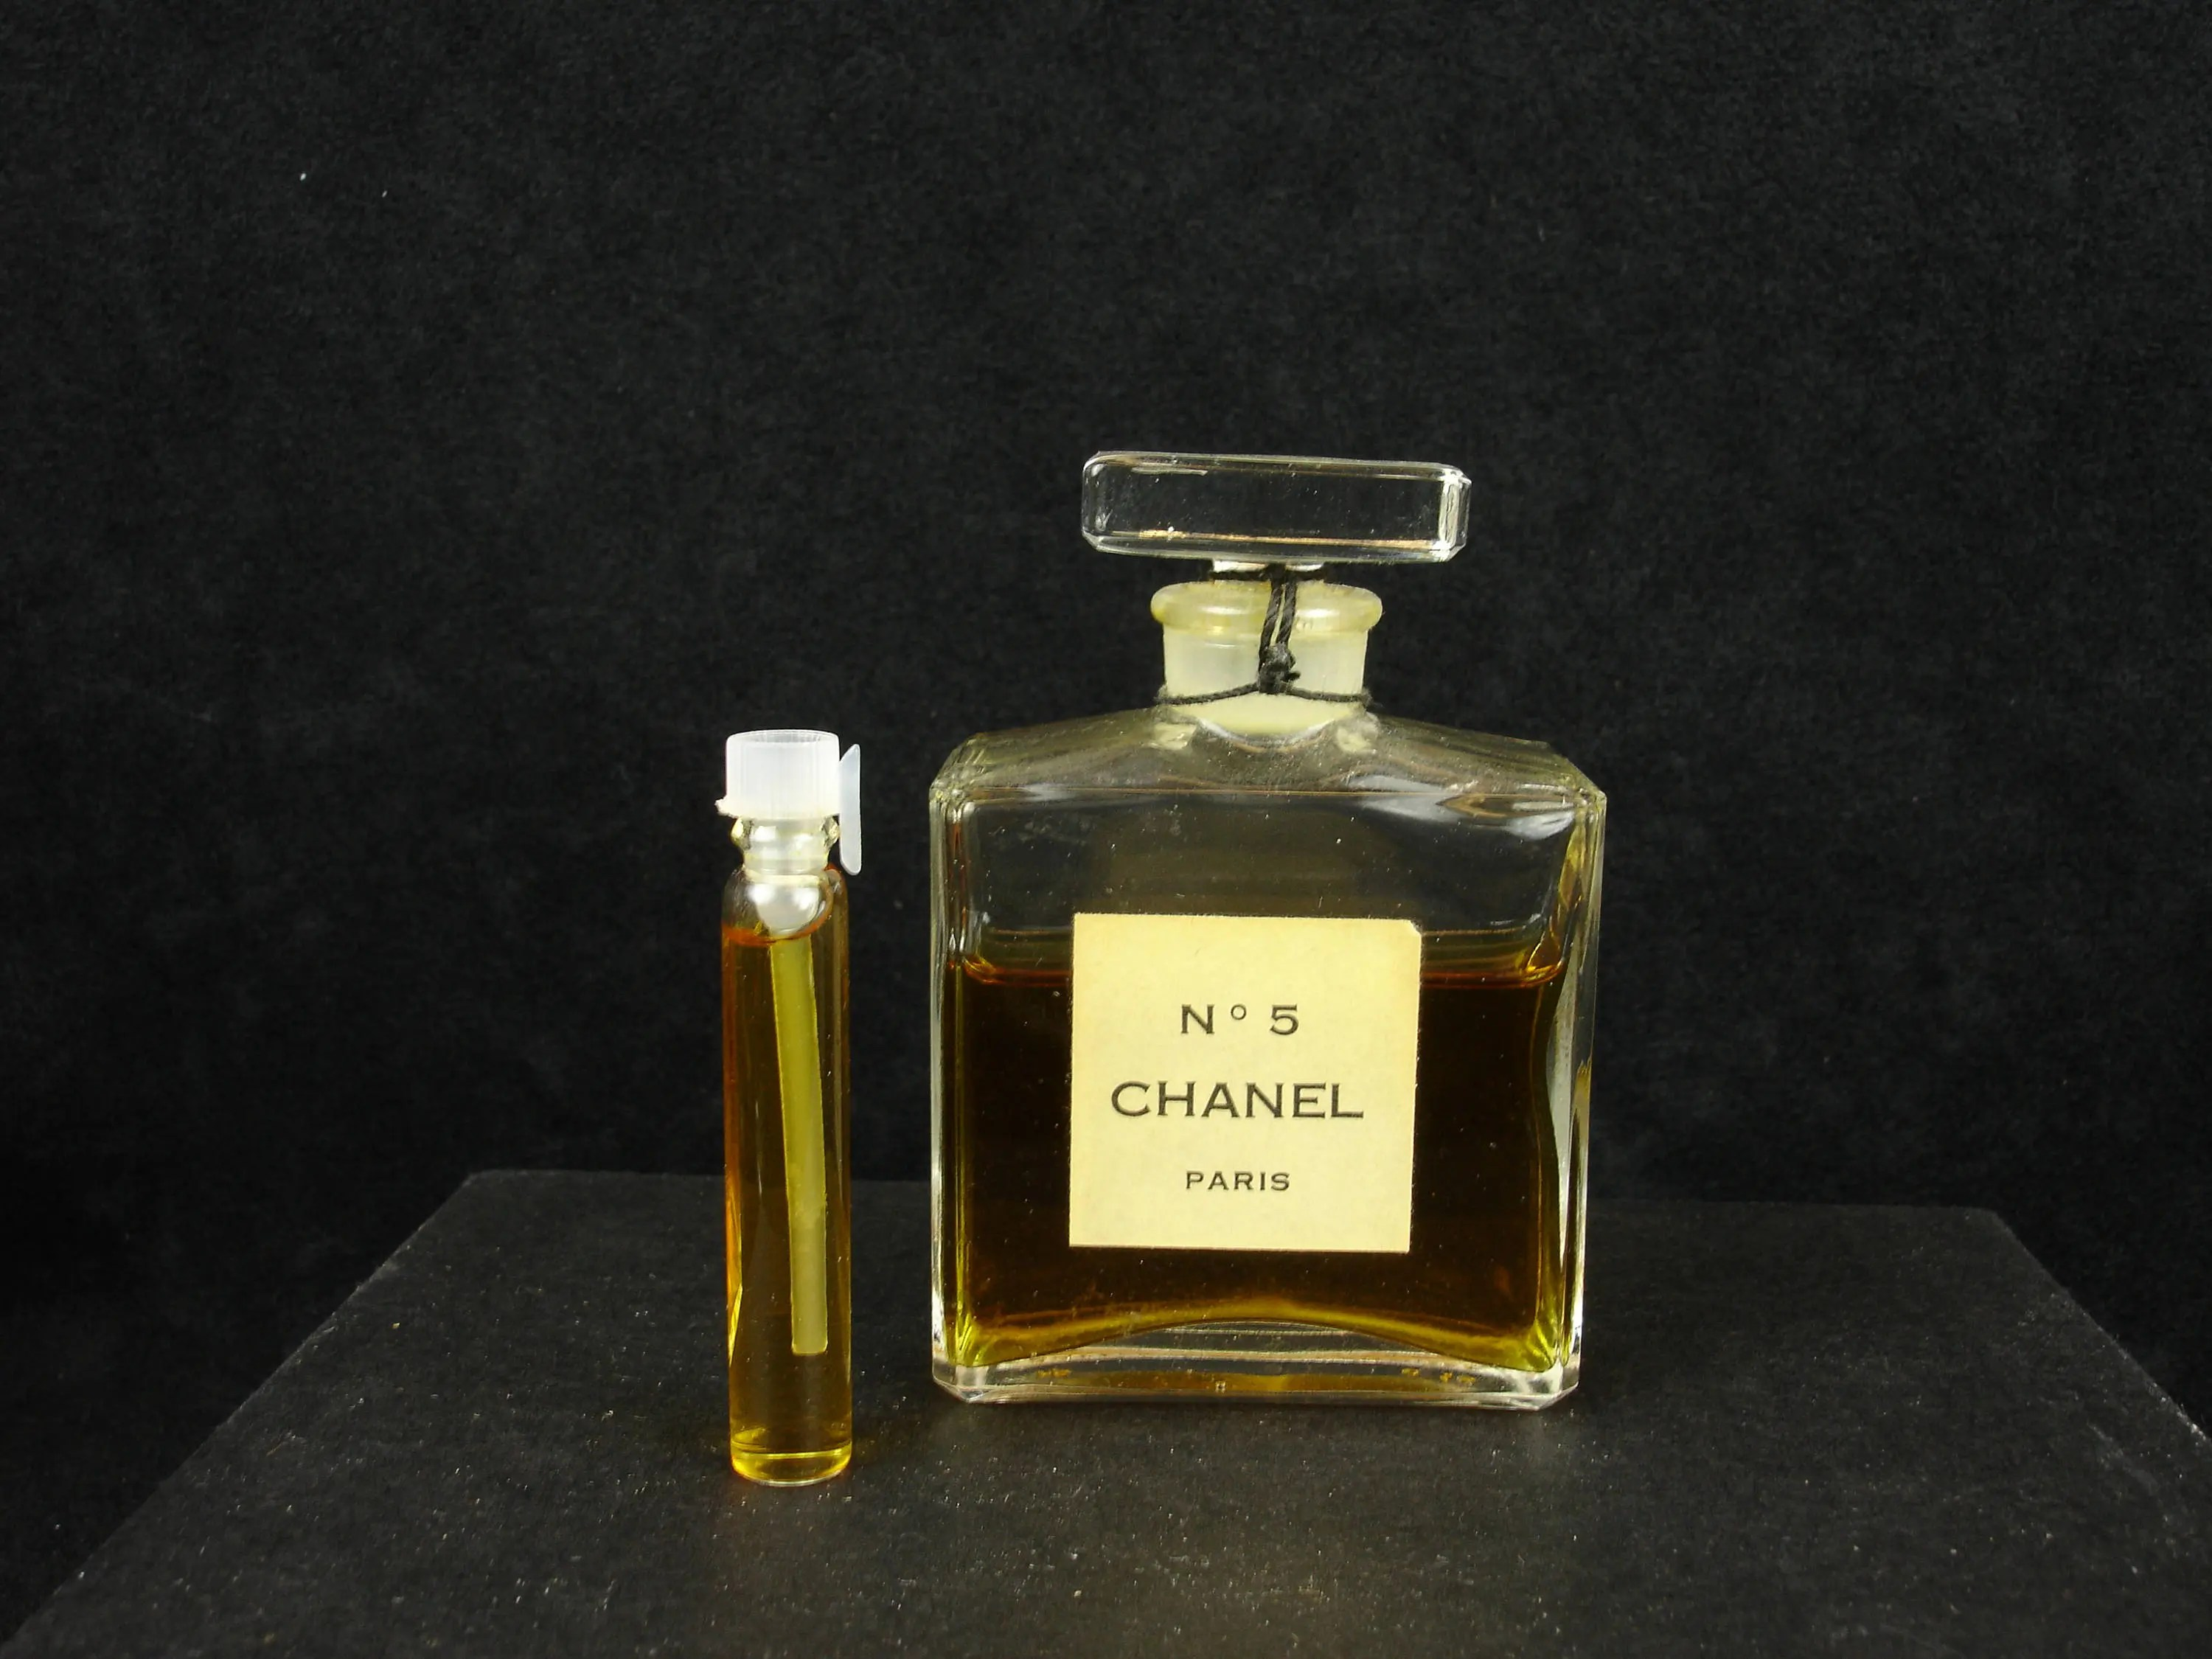 Parfum Diamantform Vintage 1970 S Chanel No 5 Eau De Parfum Rare Perfume For Women Discontinued Perfume Old Formula Perfume Vintage Gift Idea